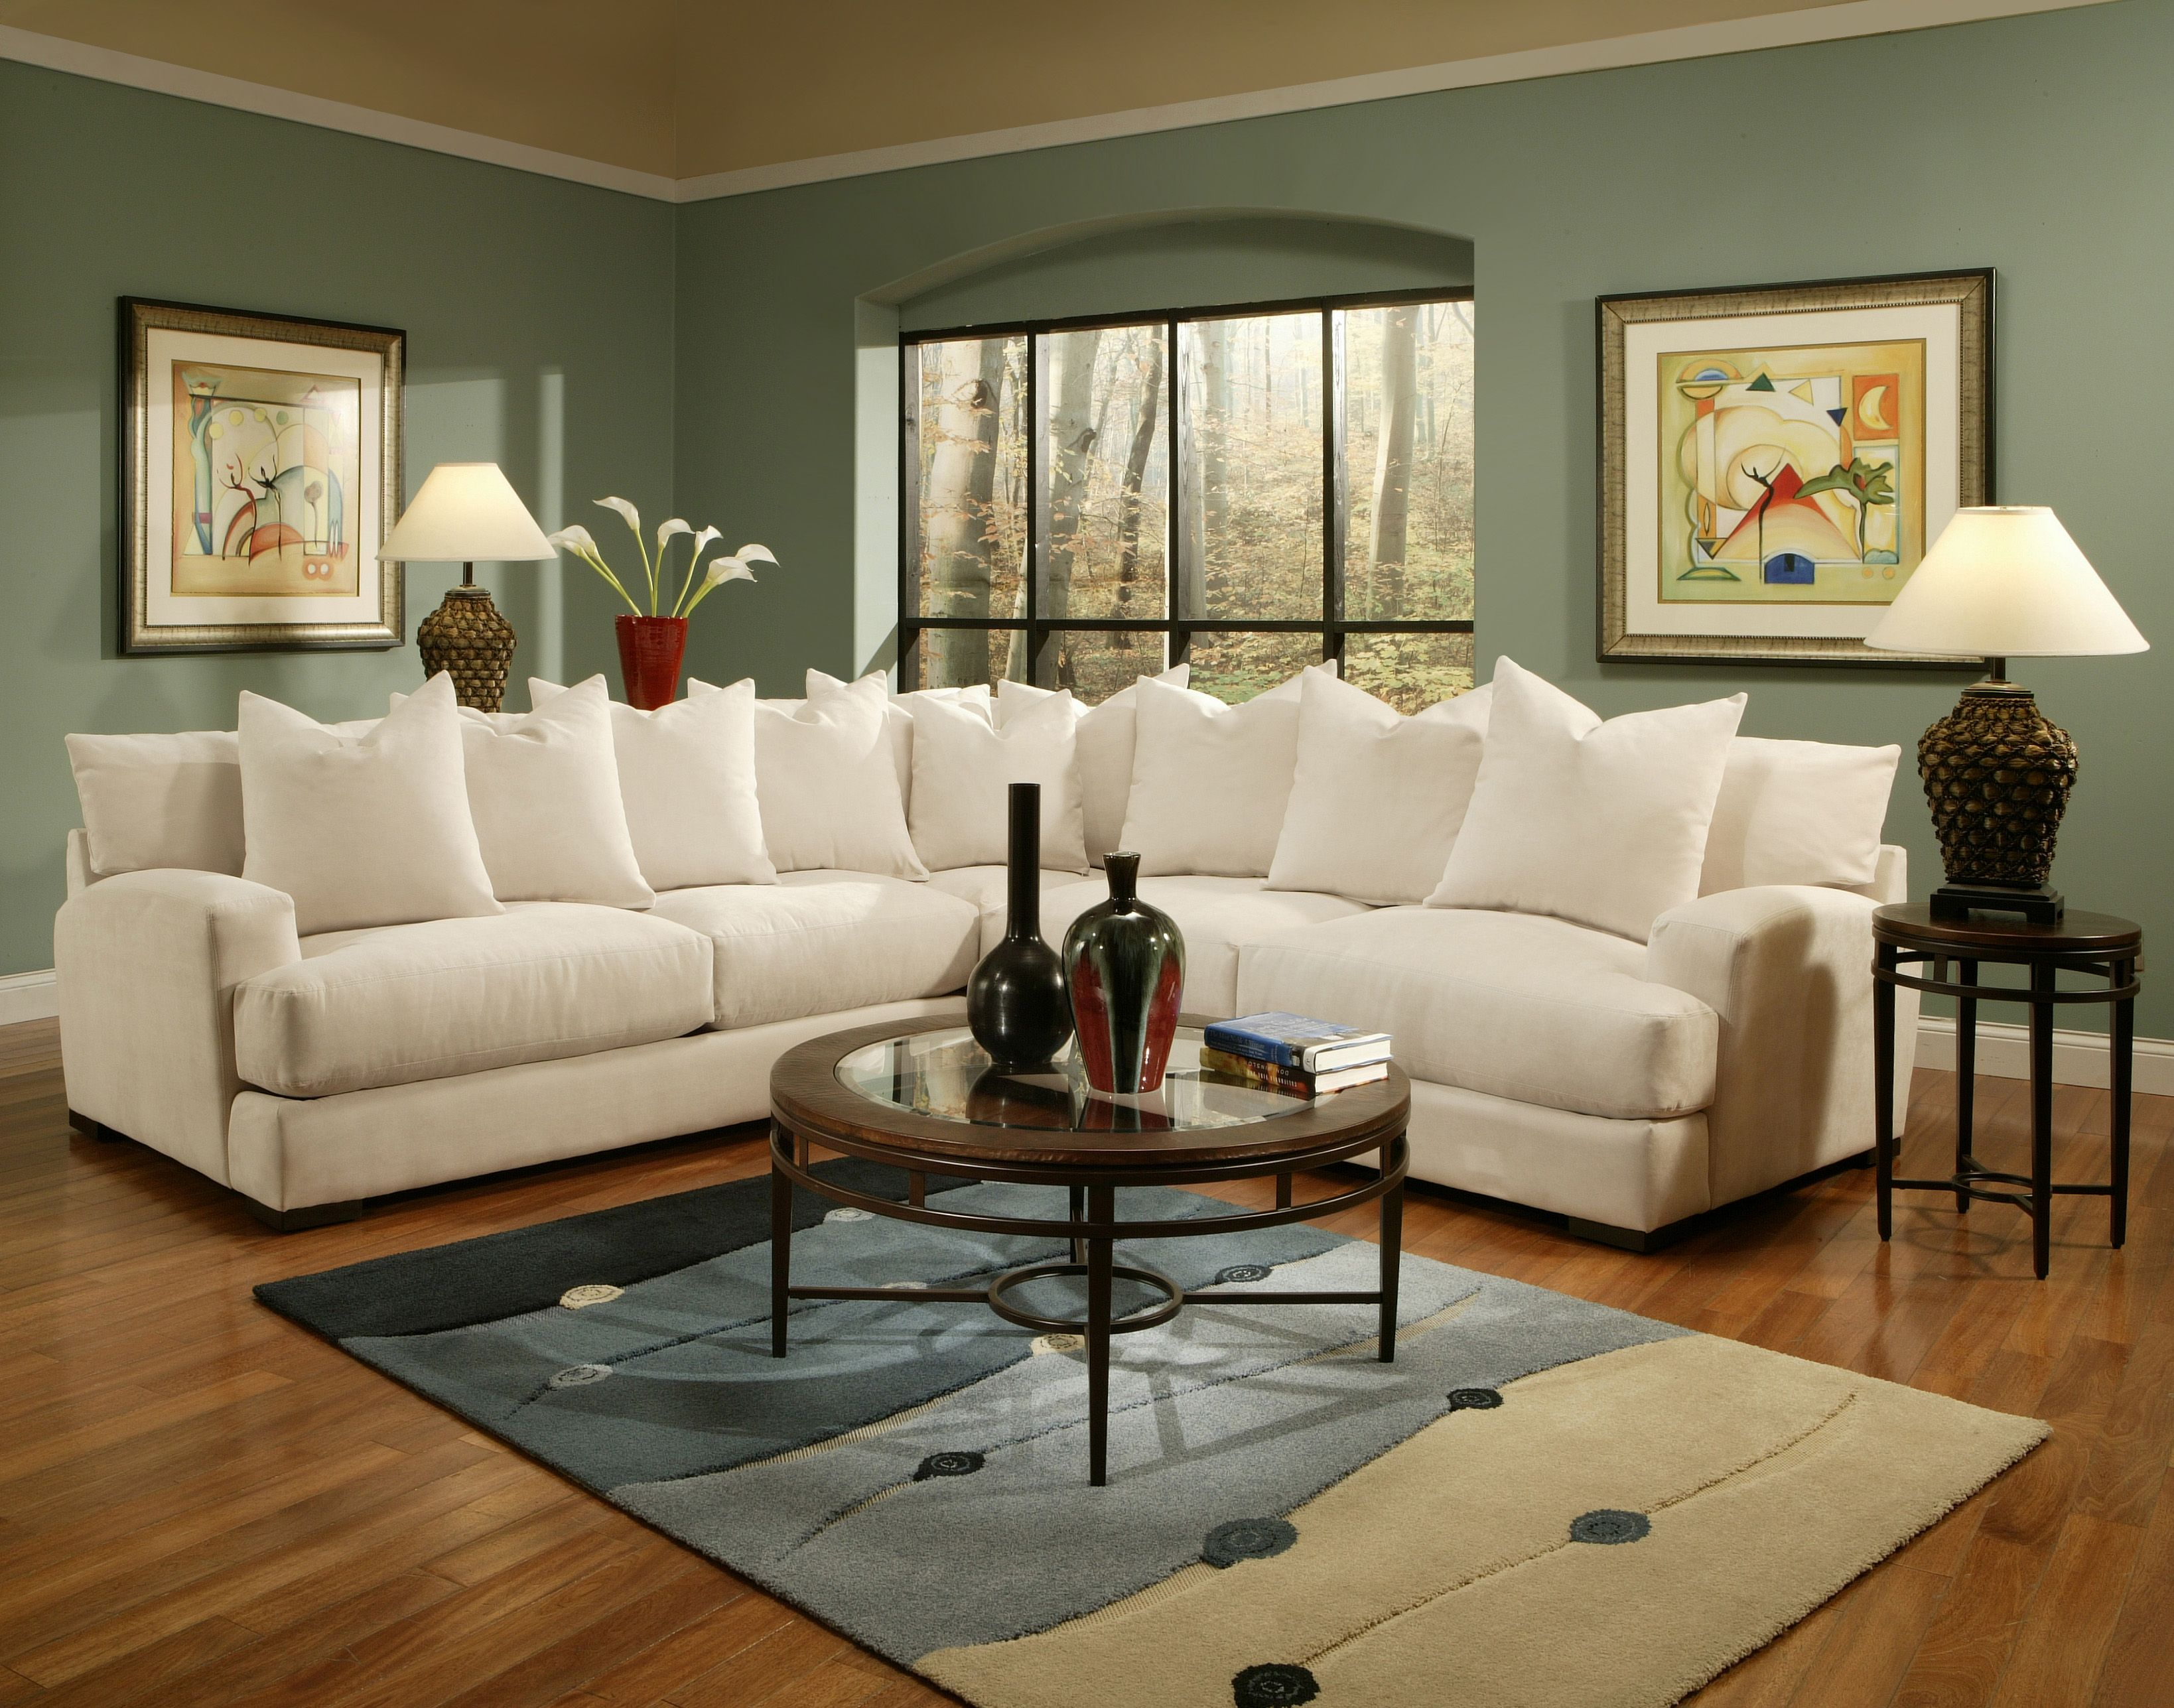 Carlin Sectional In Multiple Configurations Sofa Loveseat Chair Ottoman Accent Chairs Ottomans Also Available Sectional Sofa Furniture Custom Sofa